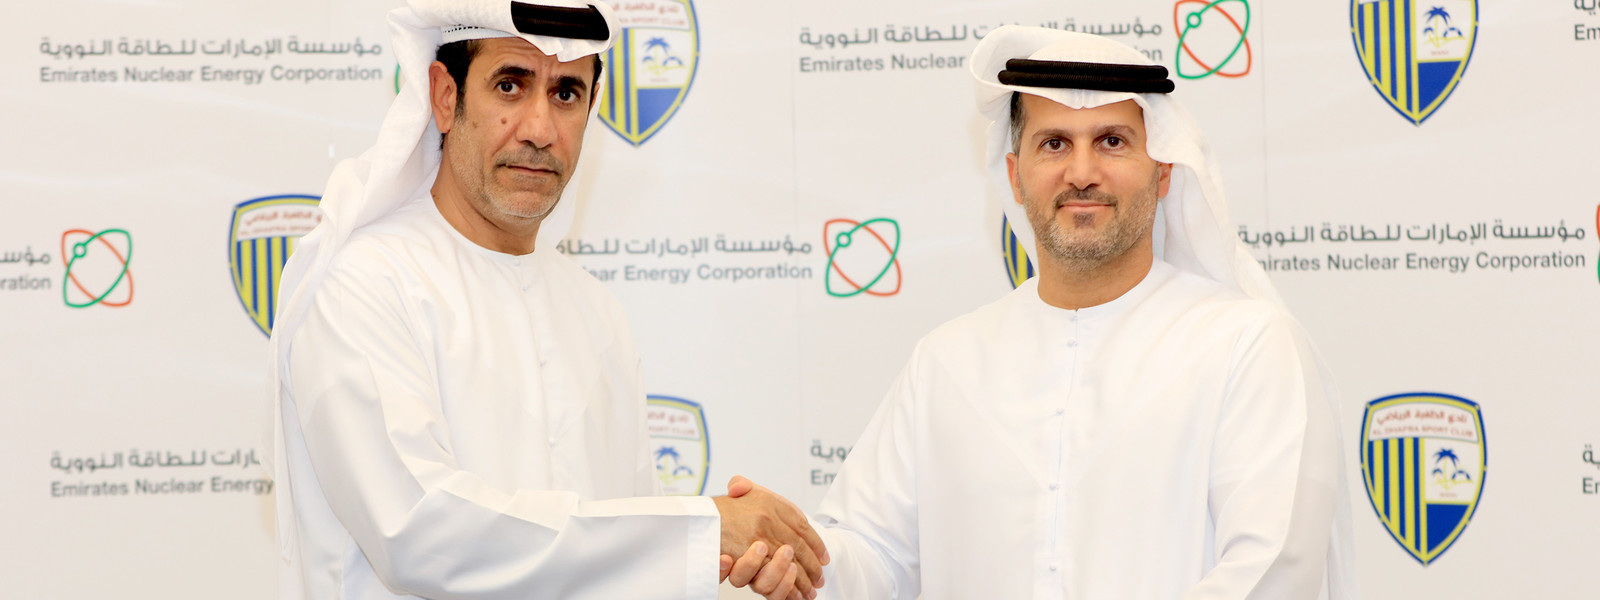 enec0-al-dhafra-club-agreement-5d35866f3dd1d.jpg (Gallery Image)